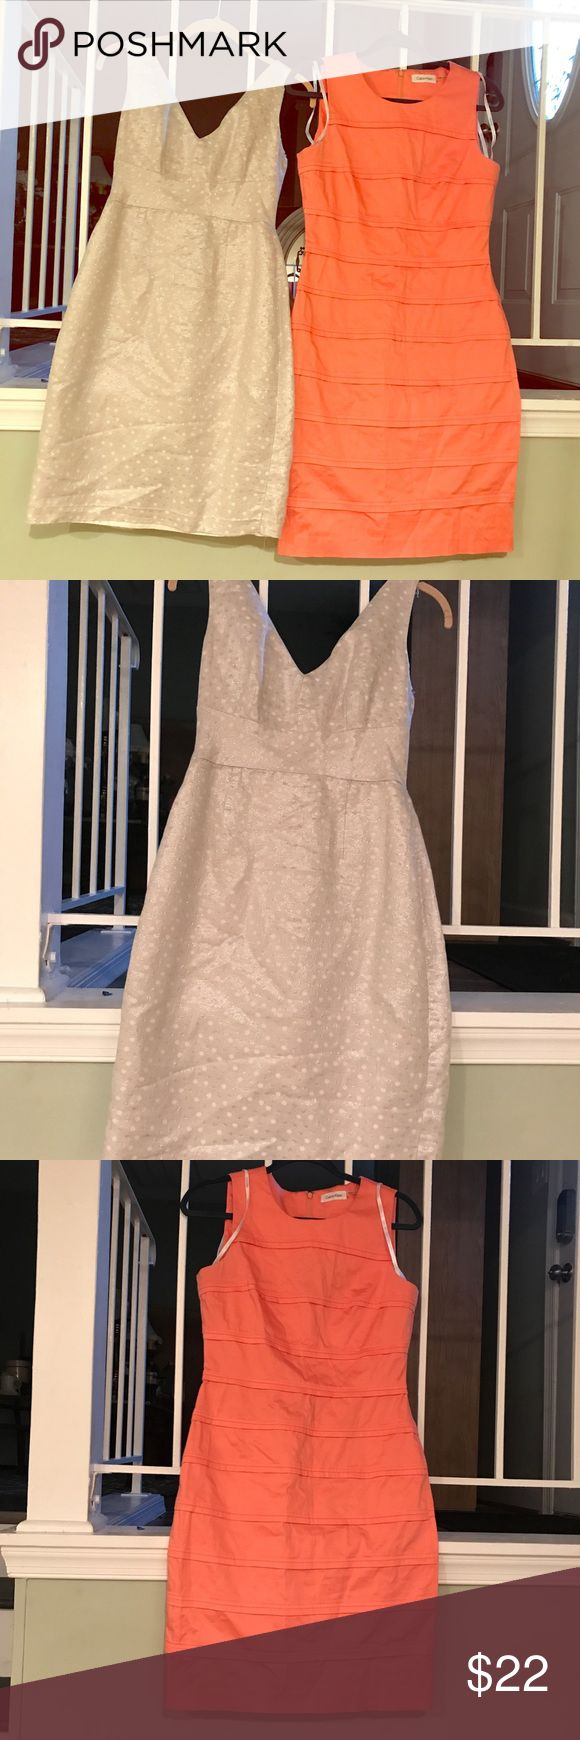 Calvin Klein dress Lot of two dresses; silver metallic jasper dress has the hem undone as shown in pics just needs to be restitched. Coral Calvin Klein dress has no defect. Both are great for the office or cocktails. Calvin Klein Dresses